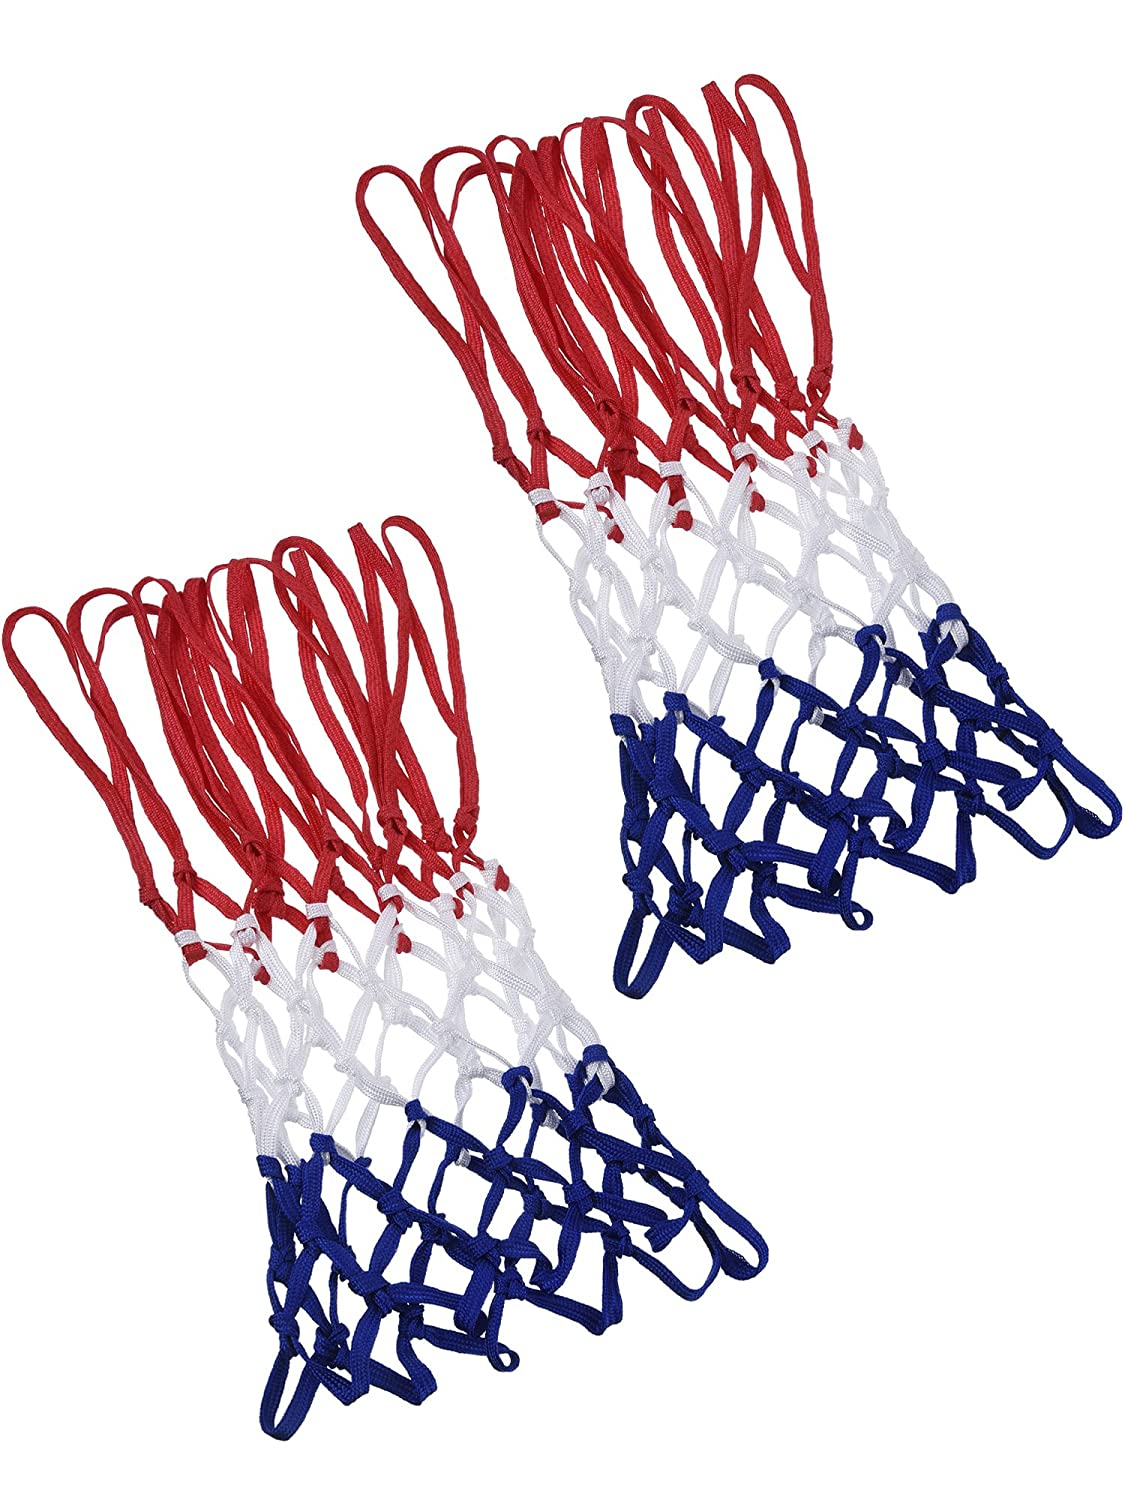 2 Pack 12 Loop Heavy Duty Basketball Net Fits Standard Indoor or Outdoor Basketball Hoop (Red/ White/ Blue) BBTO